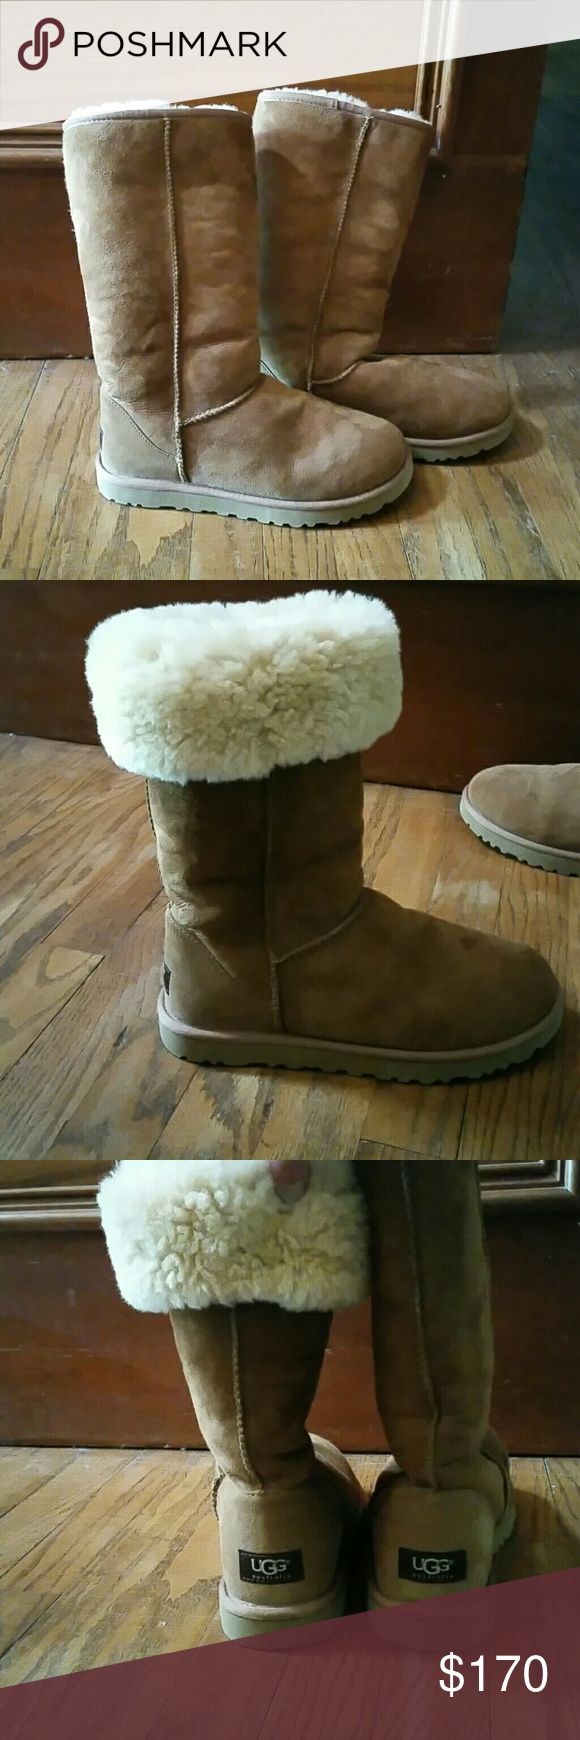 UGG - WORN ONCE - Offers Welcome. UGG - CLASSIC TALL CHESTNUT WOMENS BOOTS - WORN ONCE. WARM INTERIOR FABRIC AS PICTURED.  CAN BE WORN TALL OR ROLLED DOWN FOR EFFECT. Shoes Winter & Rain Boots